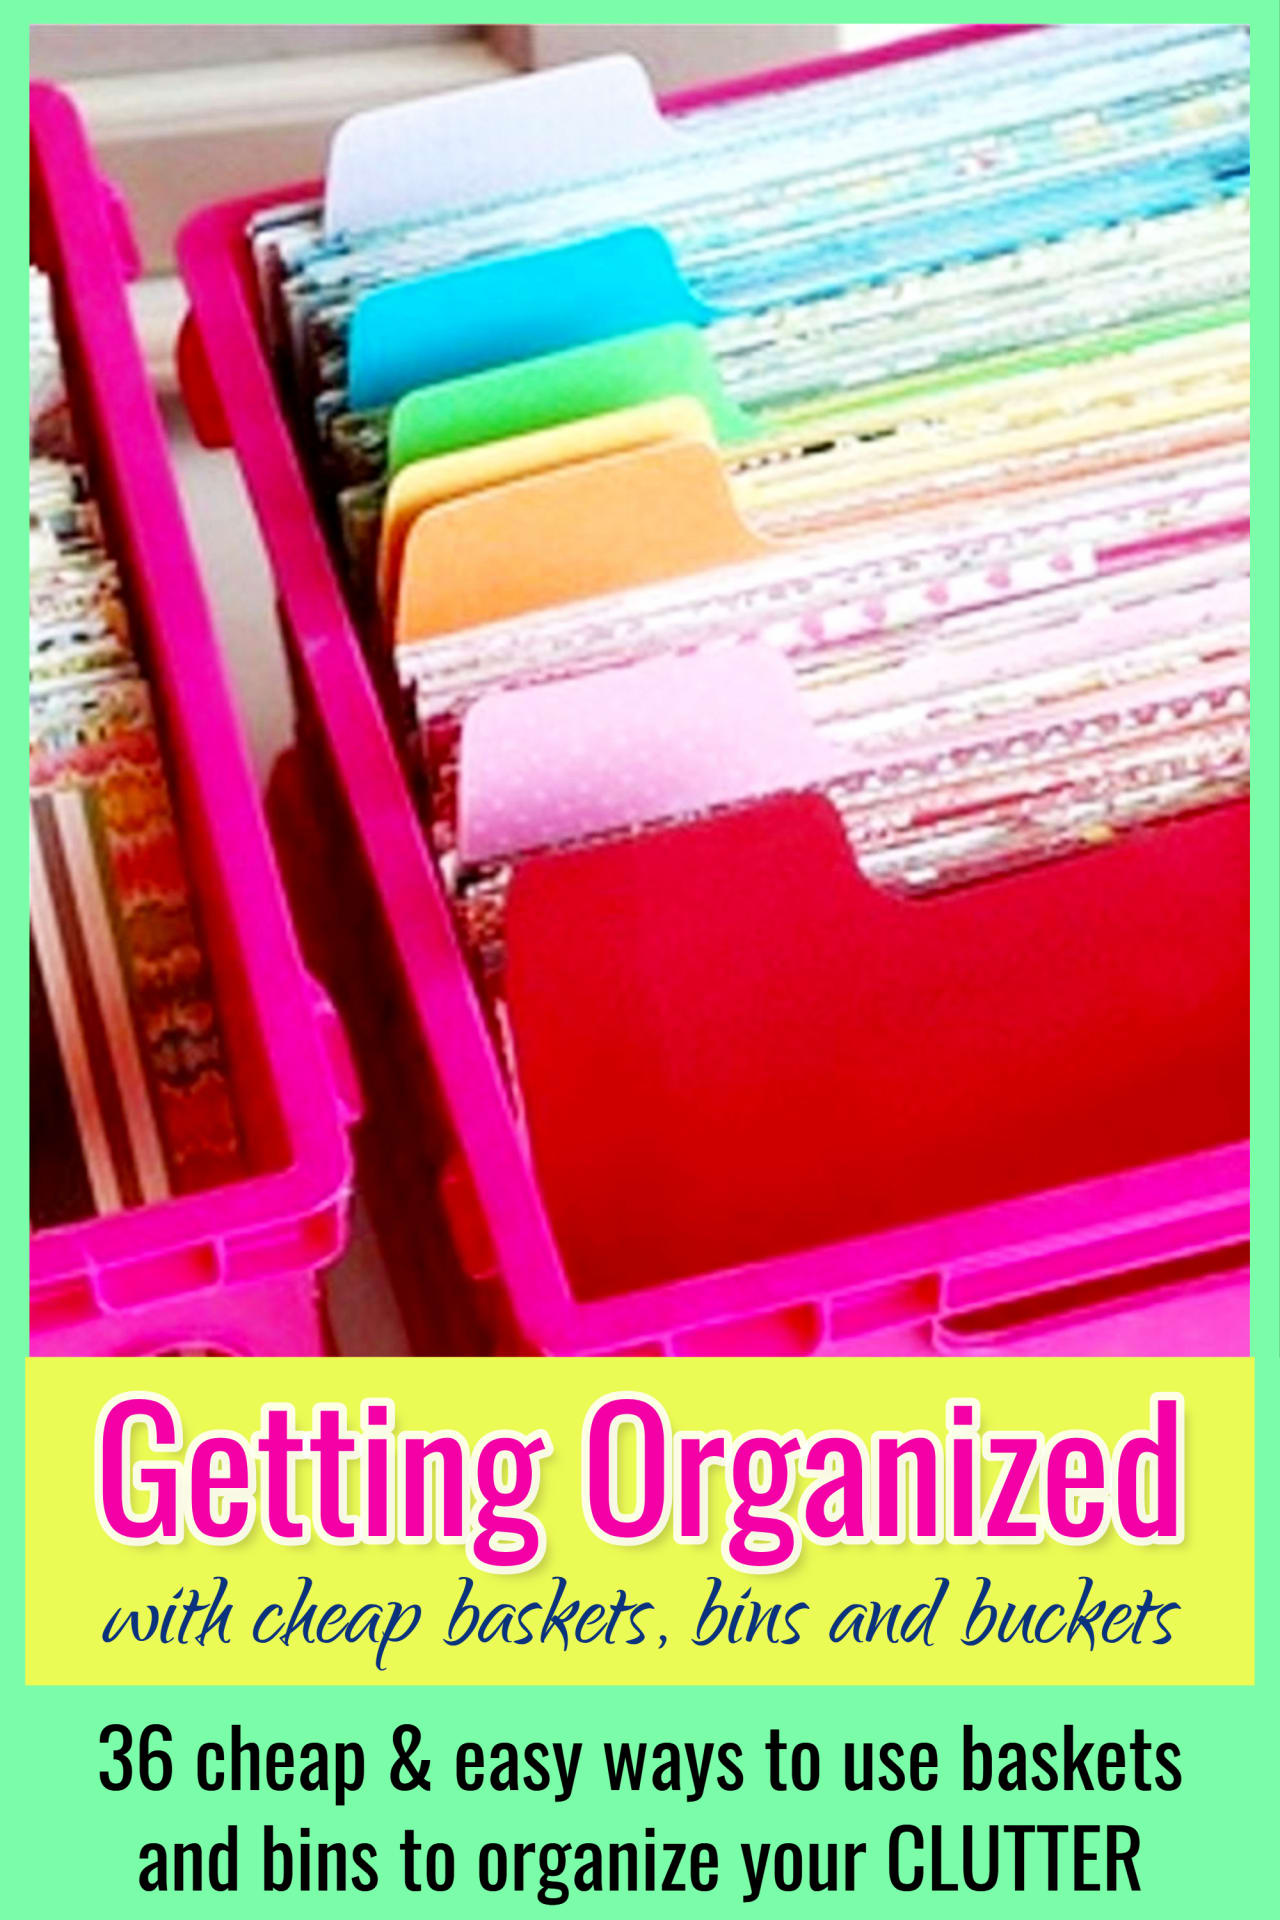 Organizing with BASKETS!  Clutter organization ideas using cheap dollar stores baskets and bins to organize your closet, bathroom, bedroom, home office, kitchen, clothes and more using these basket organization ideas for organizing clutter.